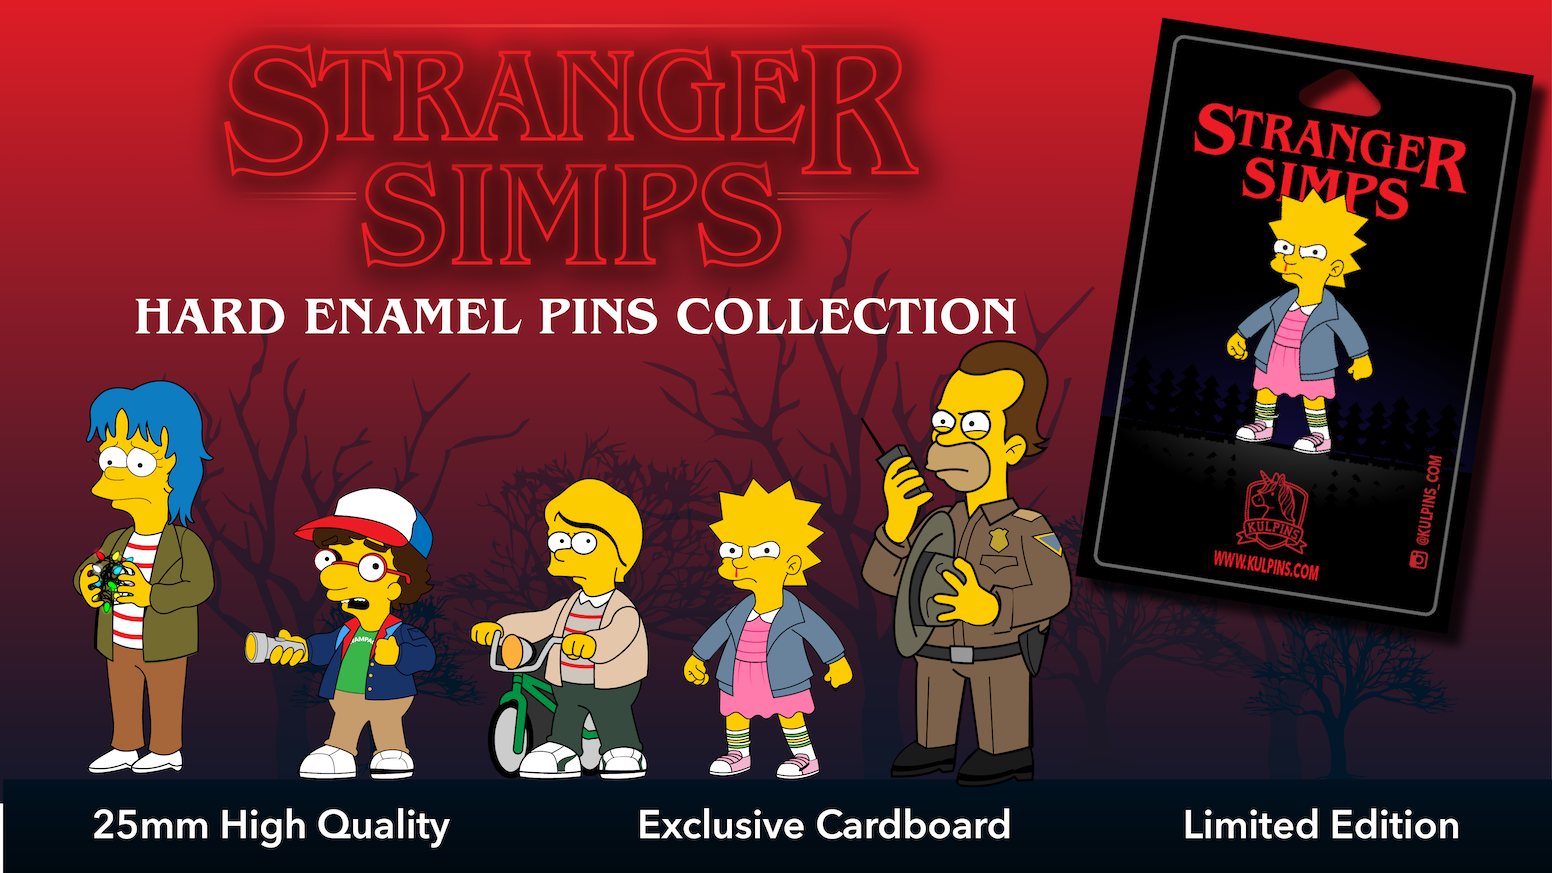 11fbd5c1f3 Amazing Collection of Hard Enamel Pins of The Simpsons and Stranger Things  characters together! High